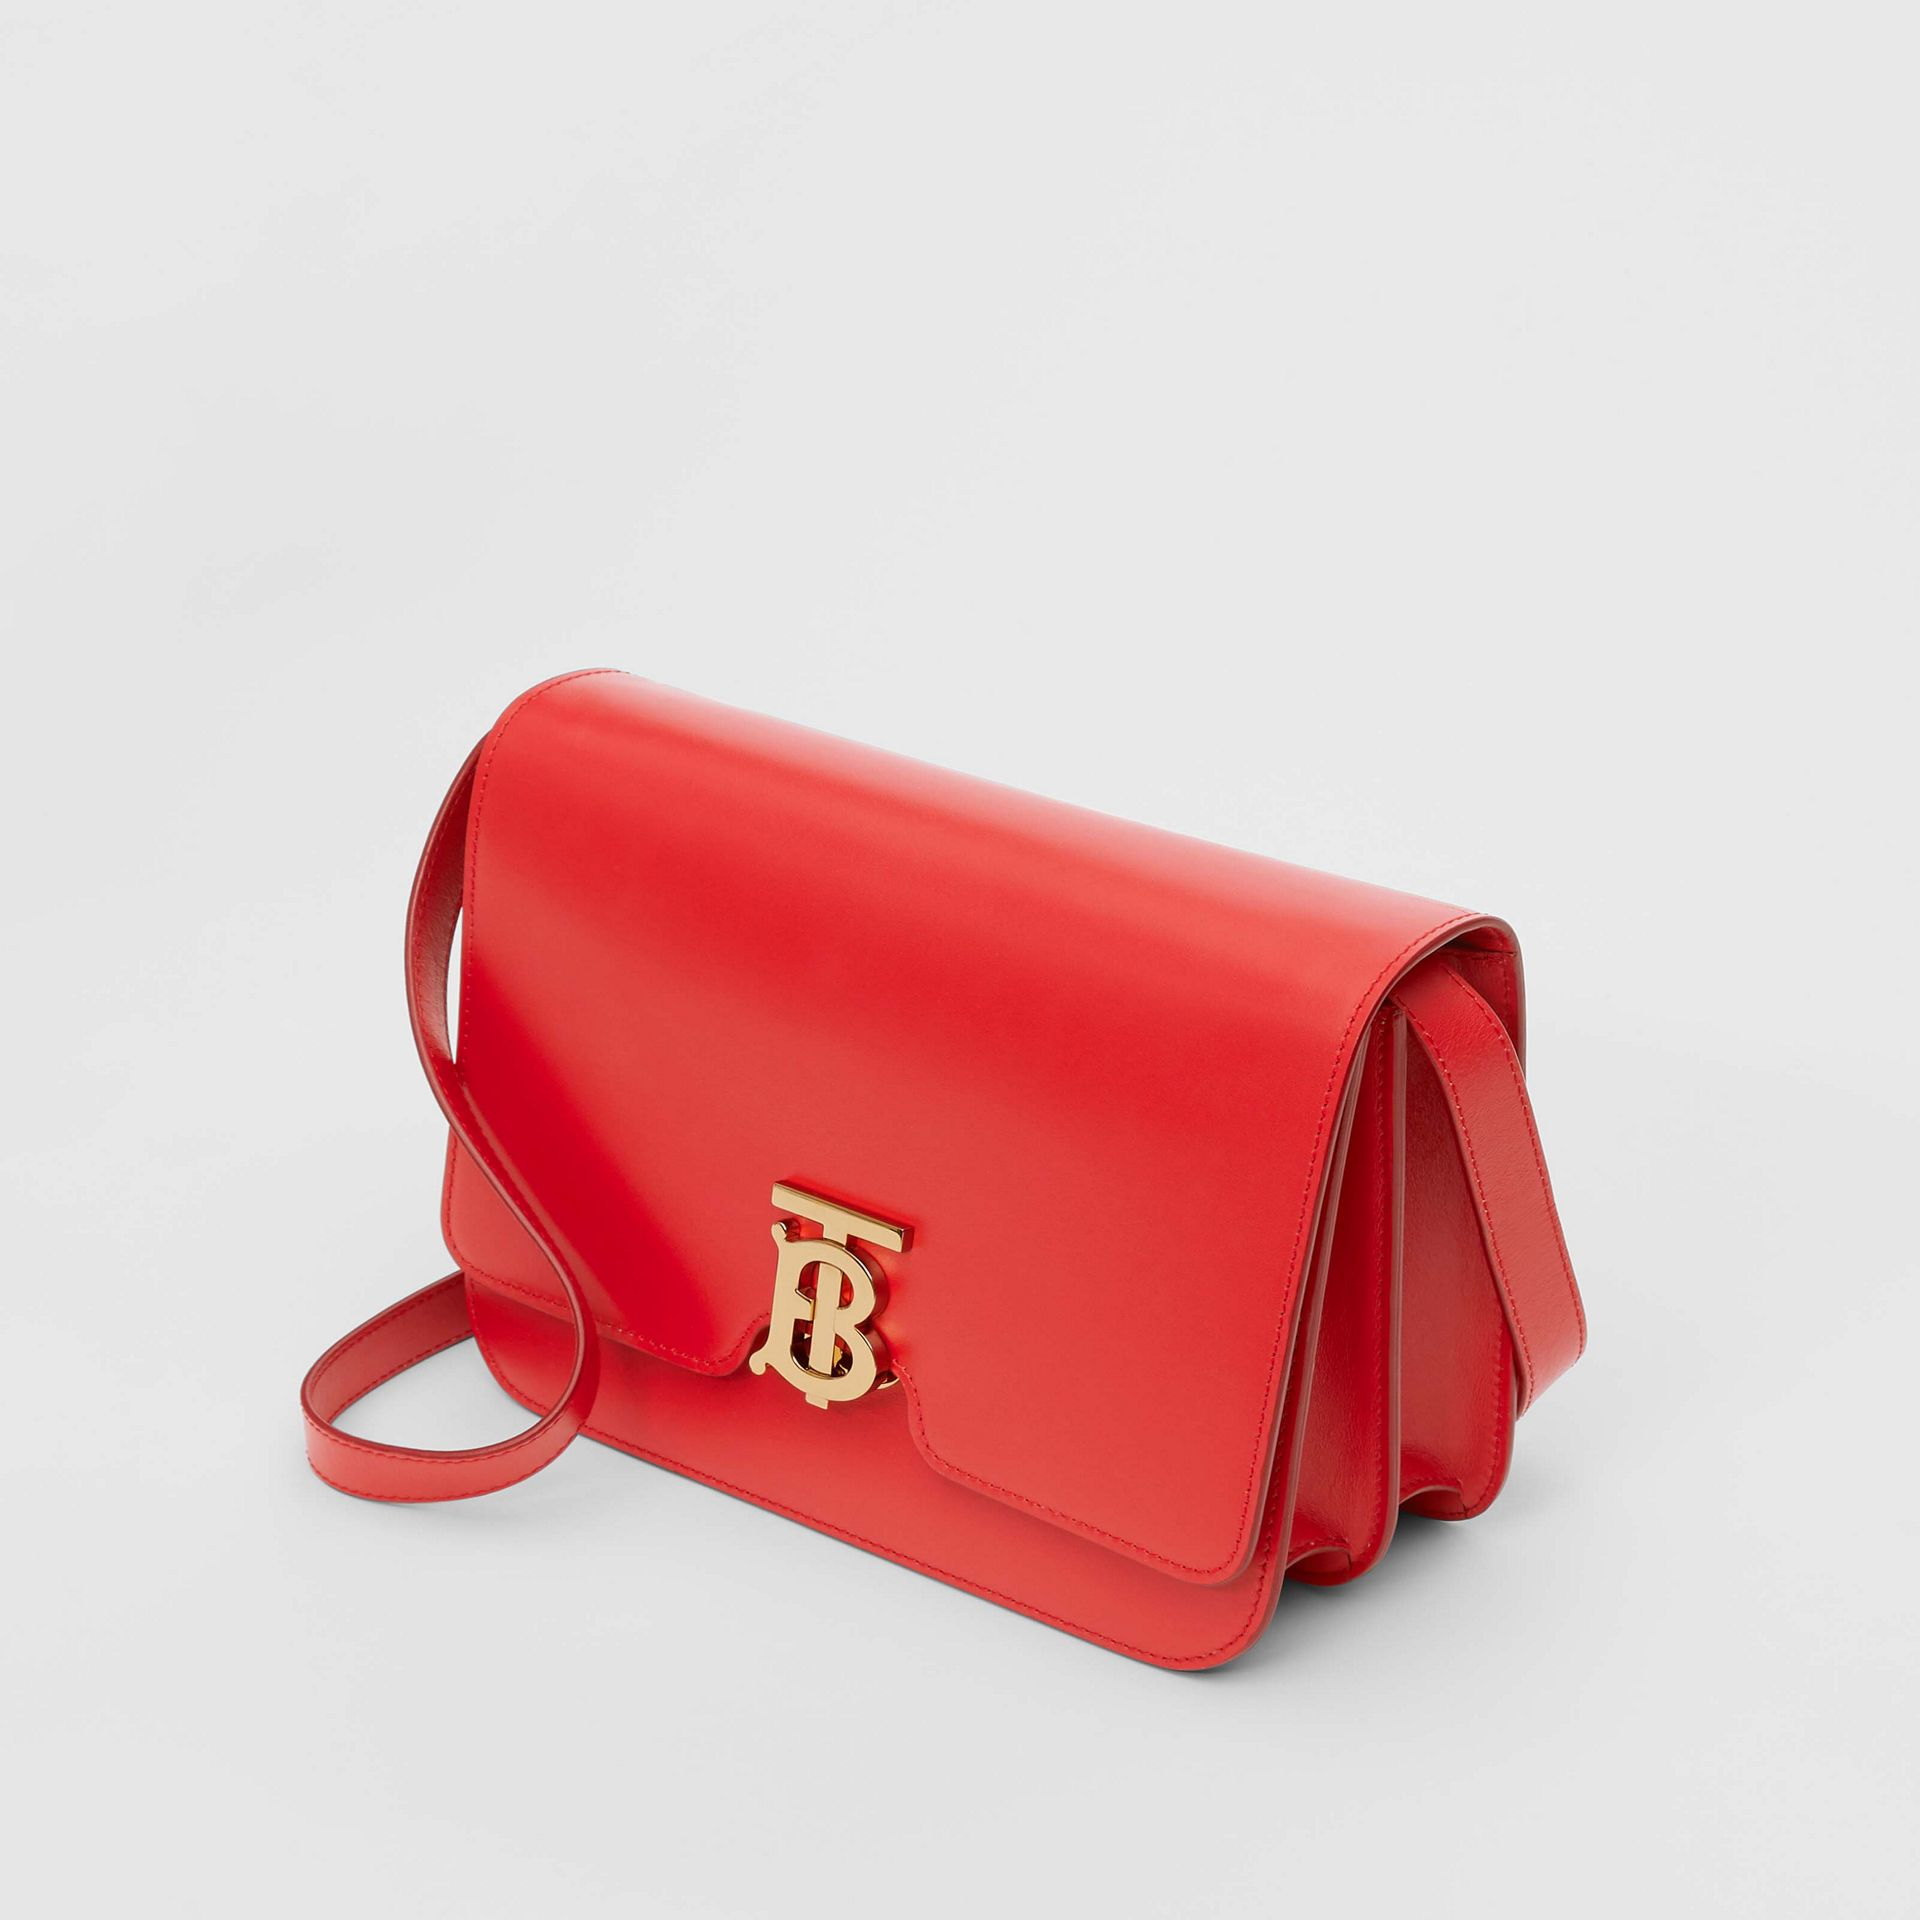 Medium Leather TB Bag in Bright Red - Women | Burberry Australia - gallery image 3